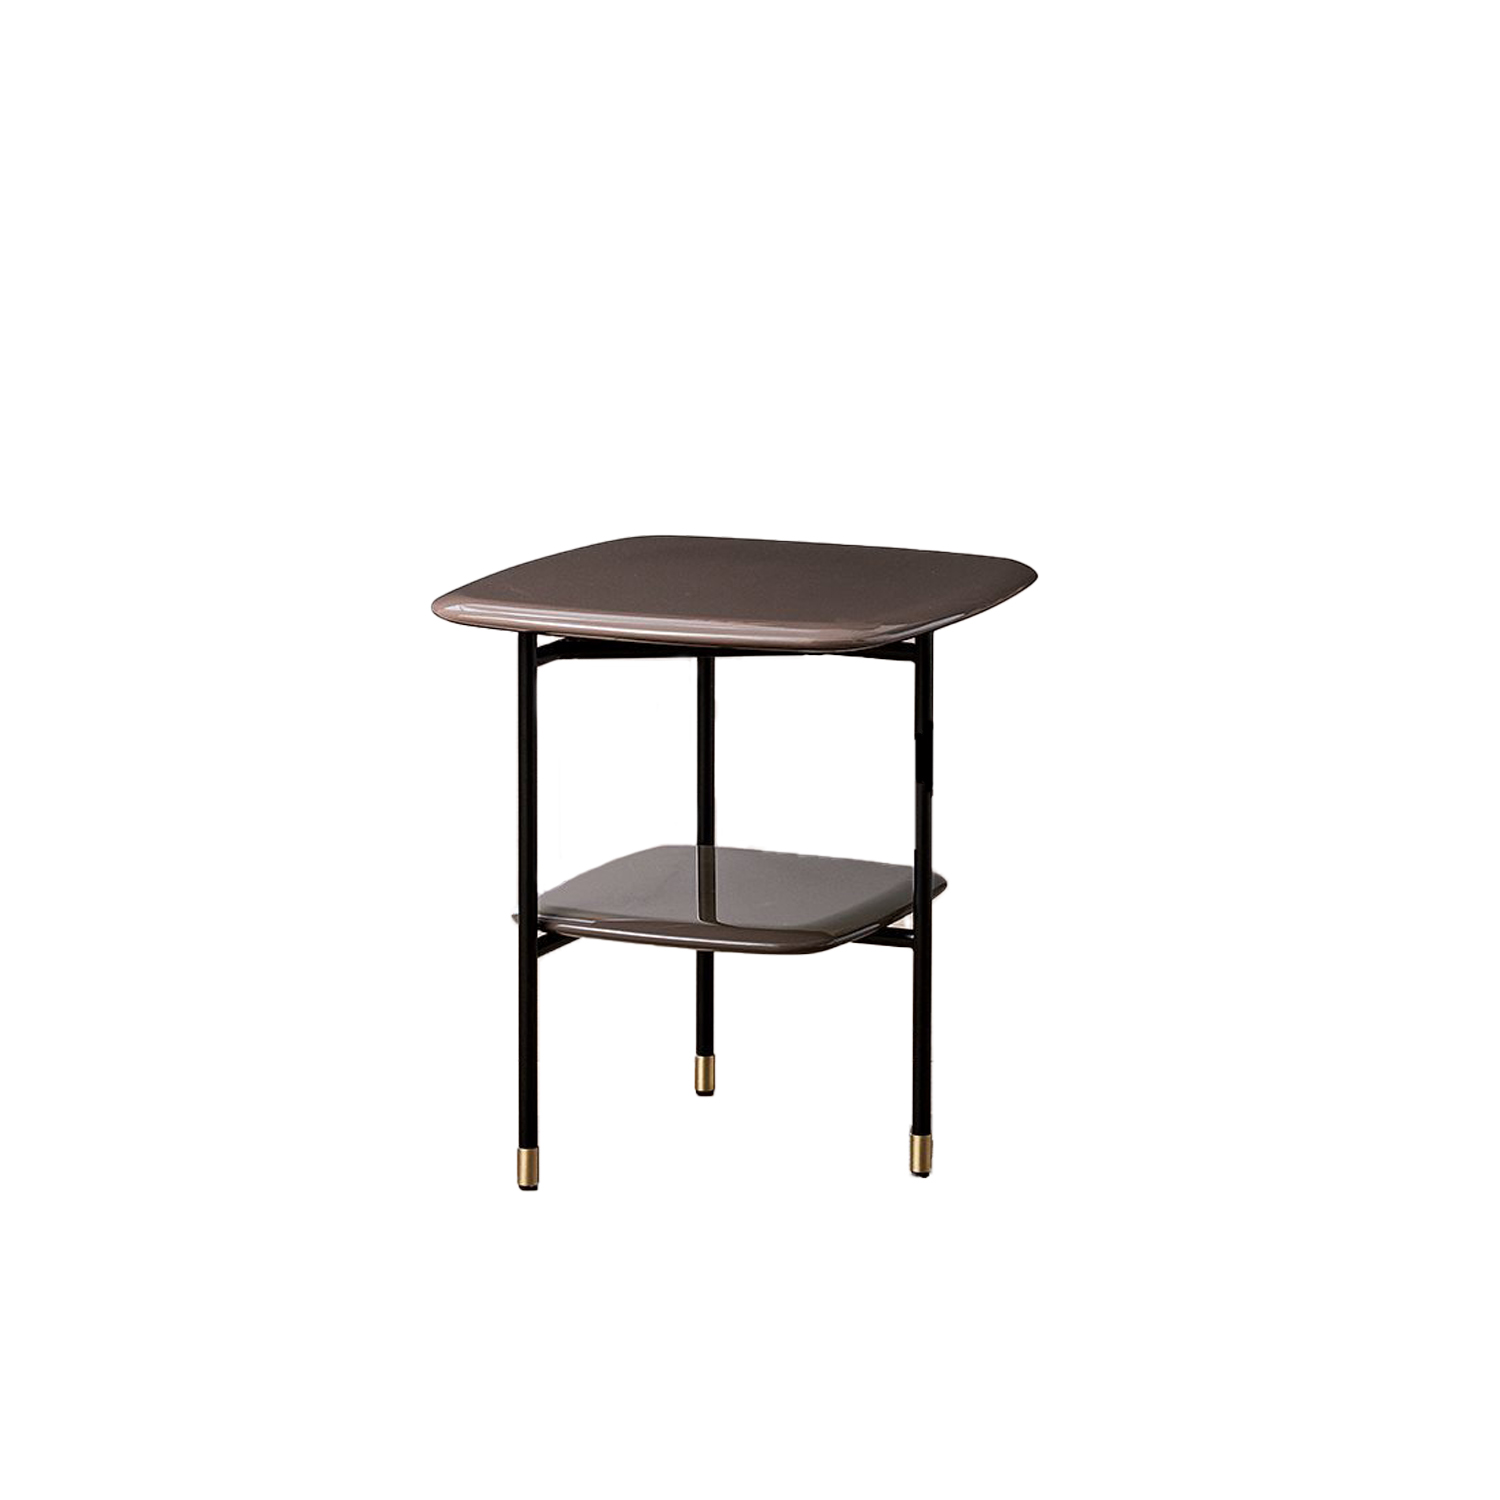 Adrian Square 45 Low Table - Collection of occasional tables featuring smooth edged tops, almost visually floating on a slim frame. 